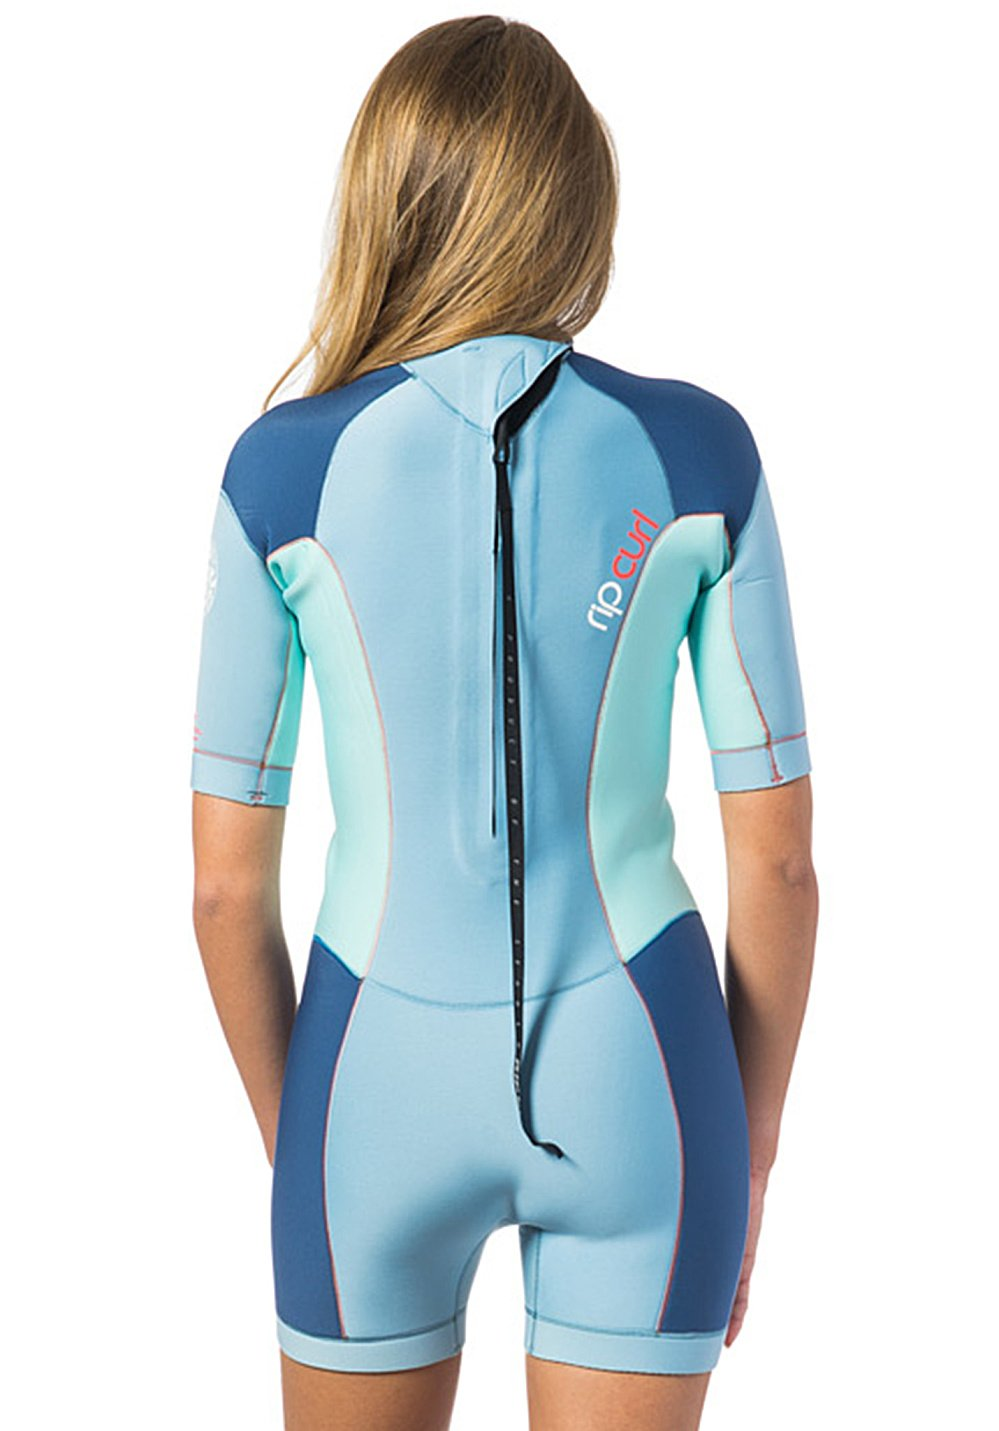 4351e97ad7 Amazon.com   Rip Curl Dawn Patrol 2mm Back Zip Spring Shorty Wetsuit Blue  ICE - Easy Stretch - Ultralite Neoprene. 2mm   Sports   Outdoors